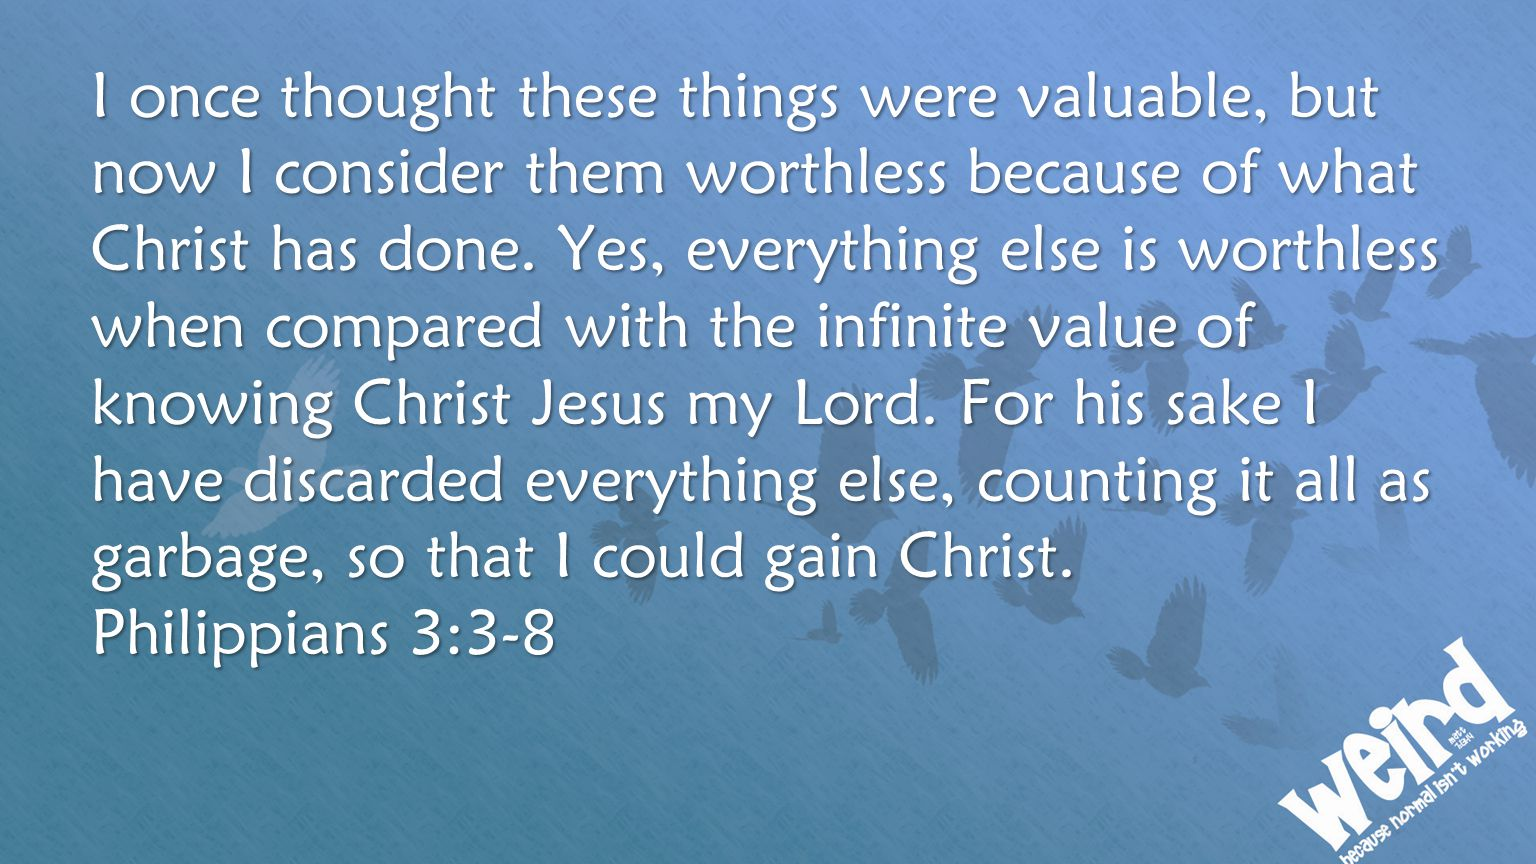 I once thought these things were valuable, but now I consider them worthless because of what Christ has done.